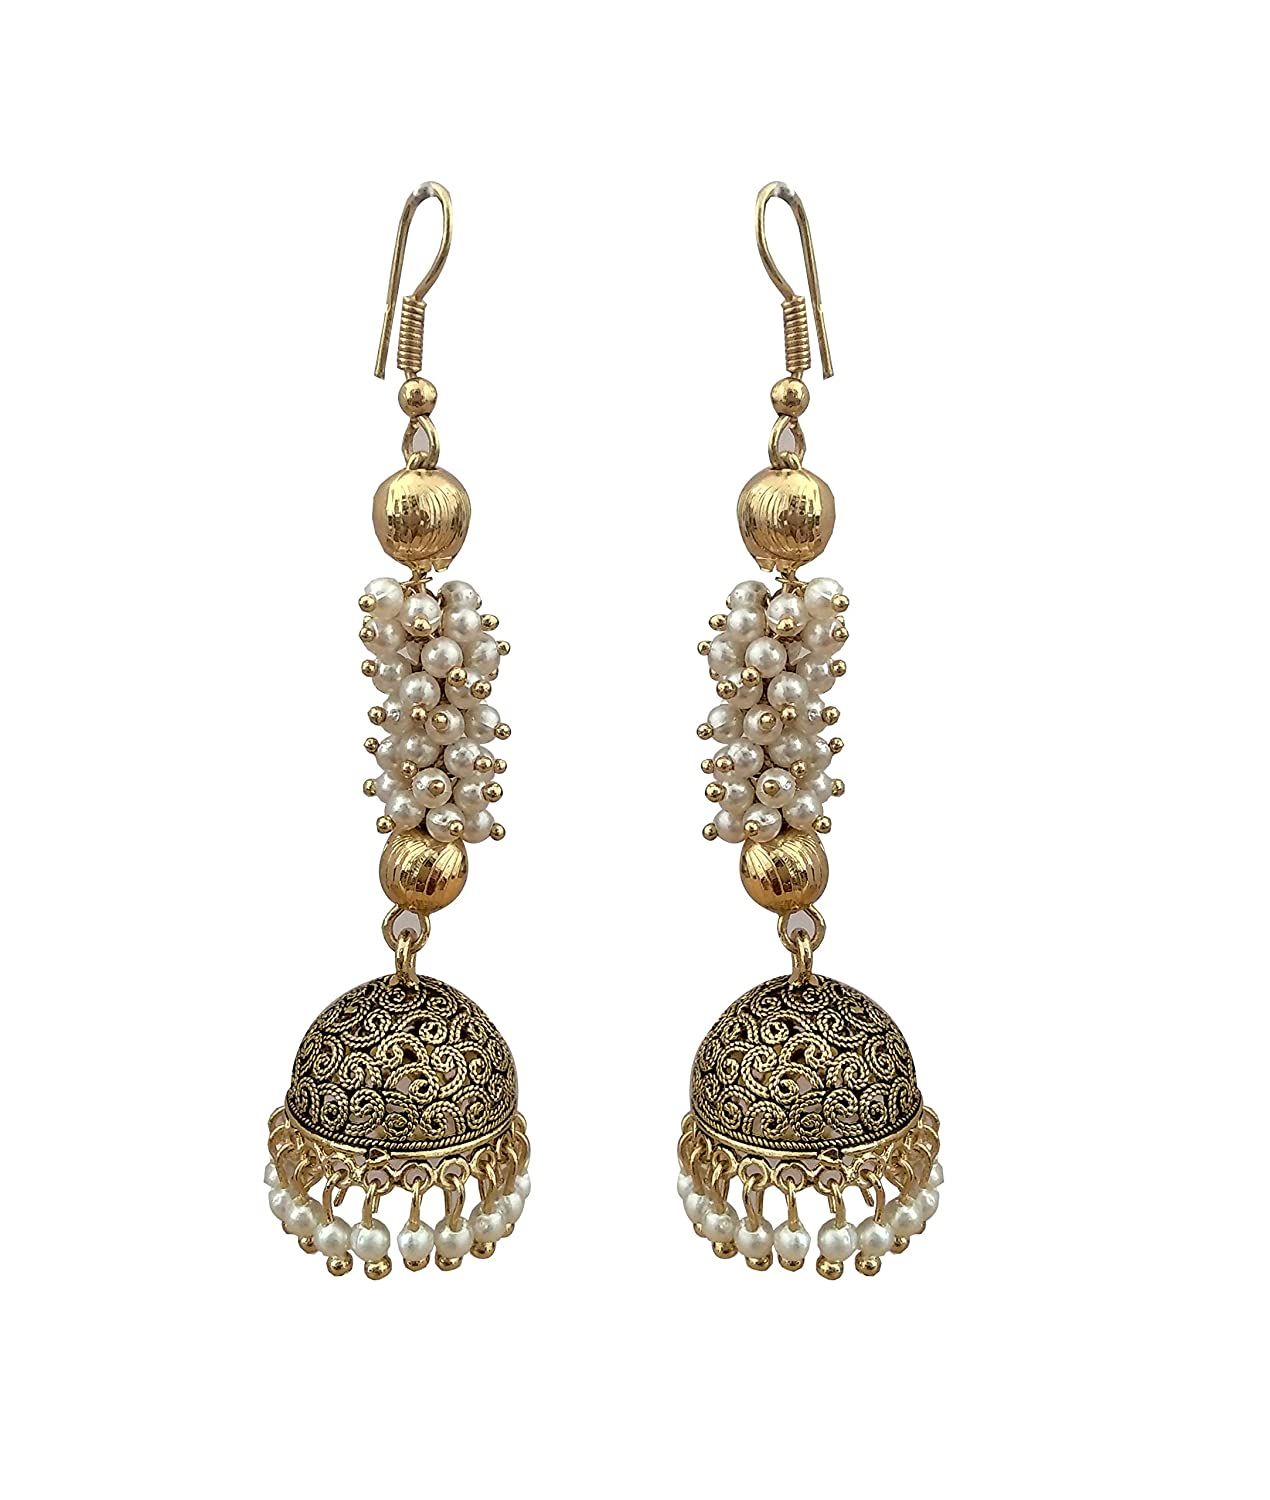 The Trendy Trendz Indian Oxidized Gold Finished Pearl Indian Wedding Long Jhumka//Jhumki Jewelry Earrings for Women and Girls